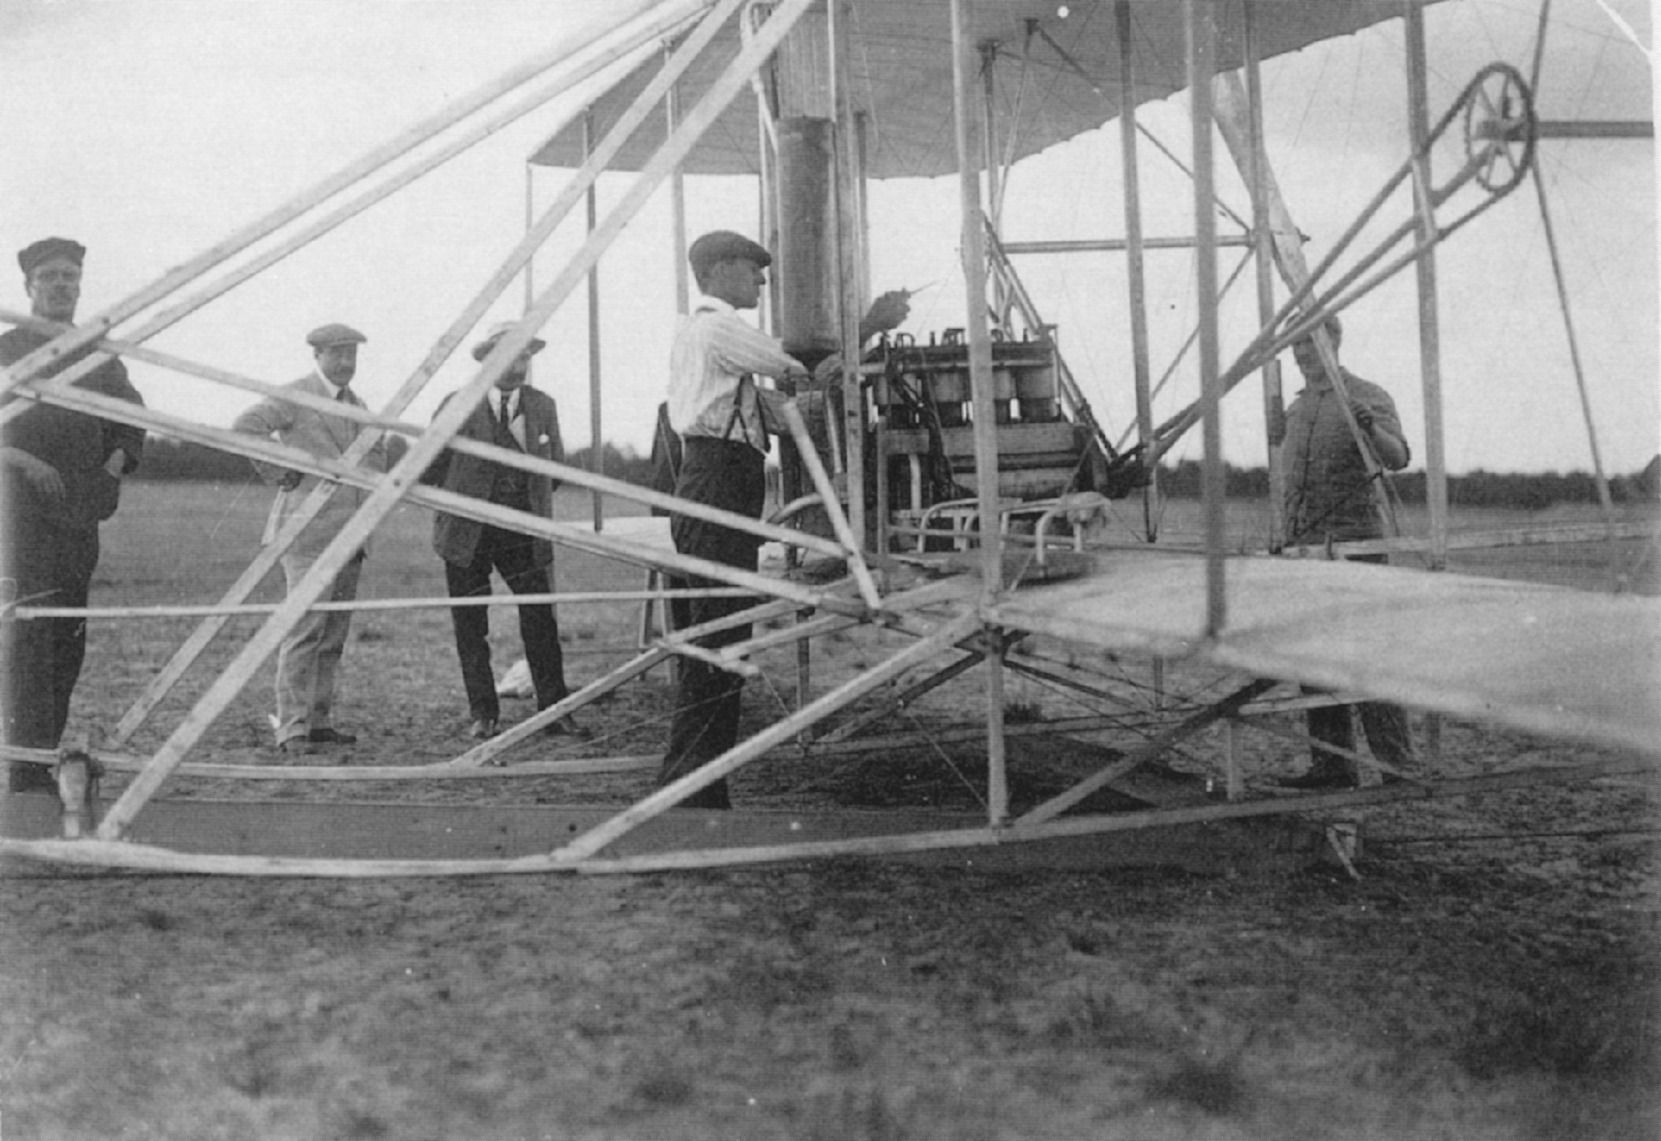 First Wright Brothers Flight for wilbur wright adjusts the engine of his aircraft, france 1908